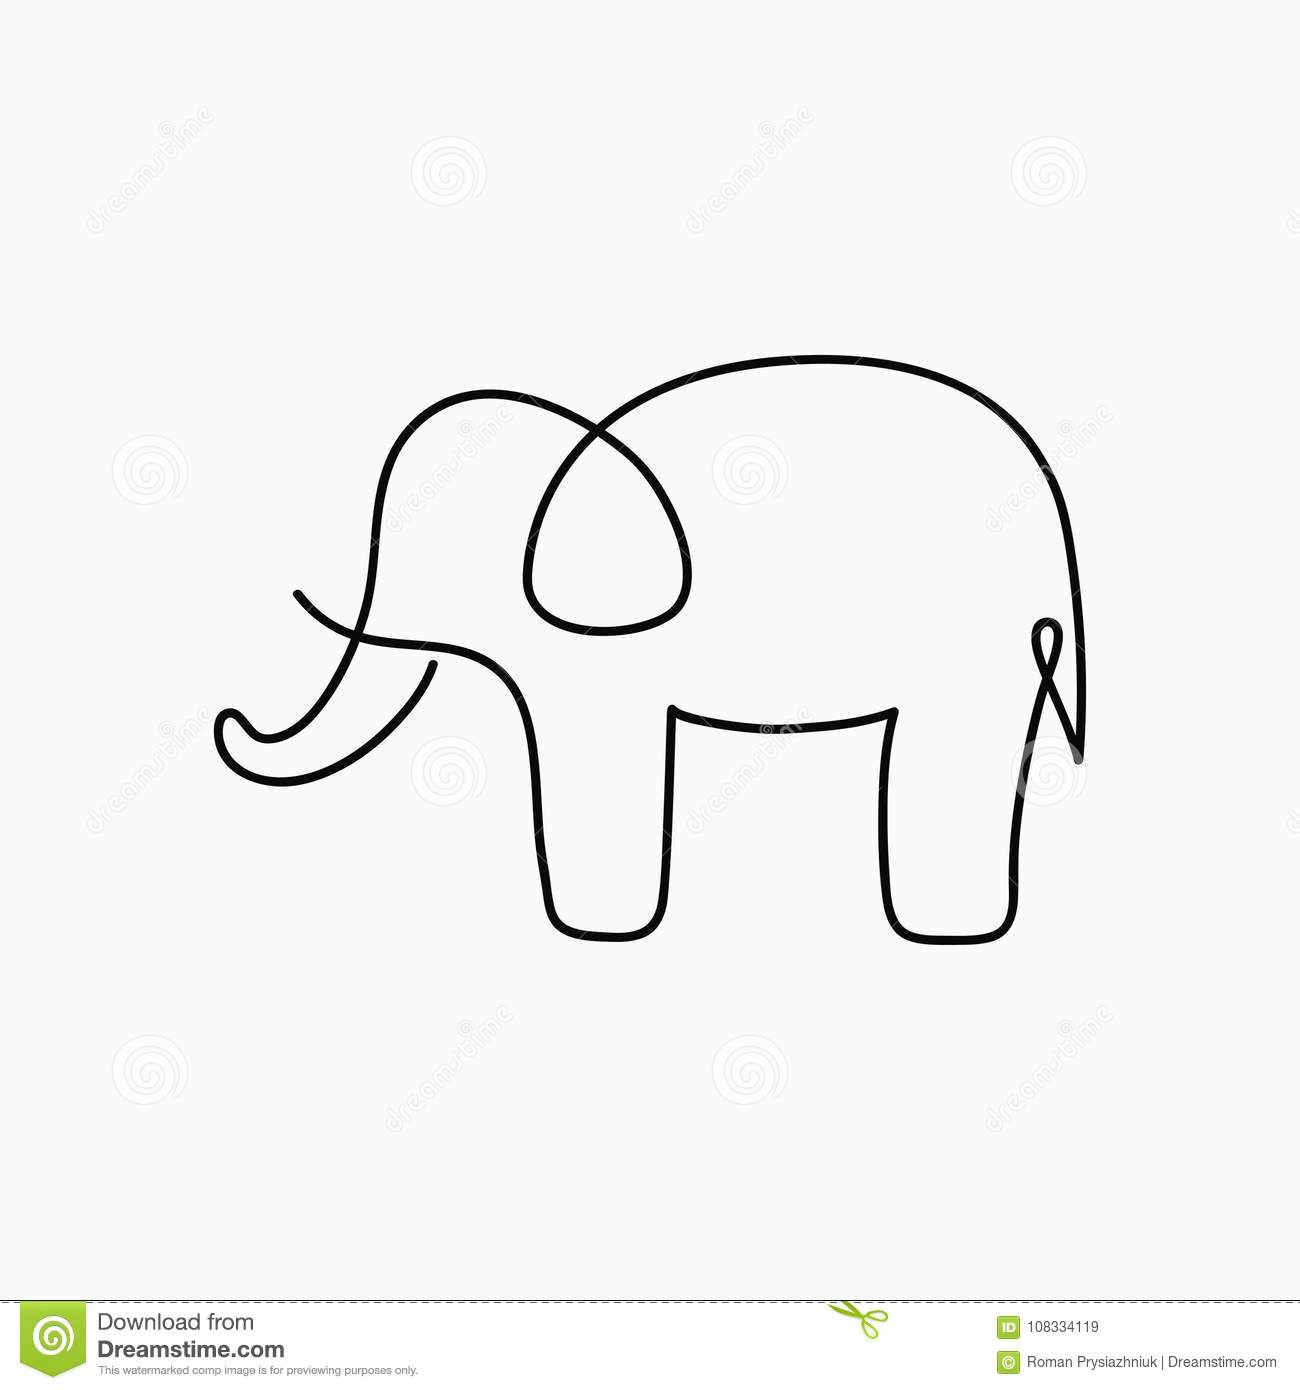 Drawing Lines Using Xbox One : Elephant one line drawing continuous animal hand